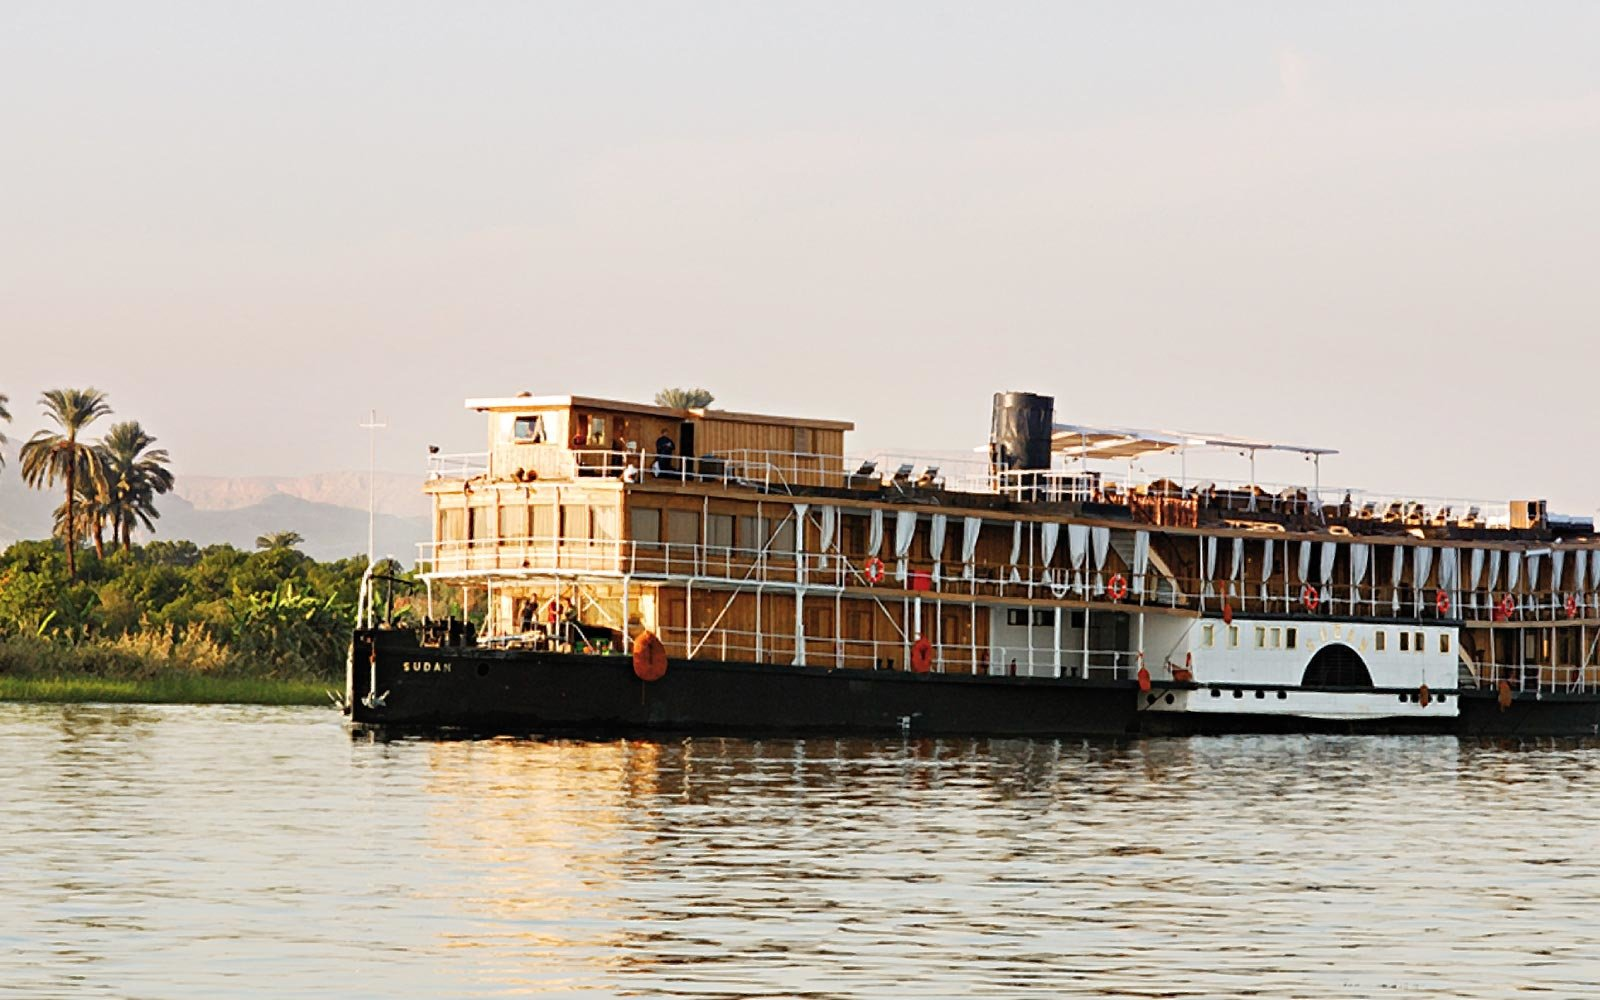 Cruising the Nile with Original Travel